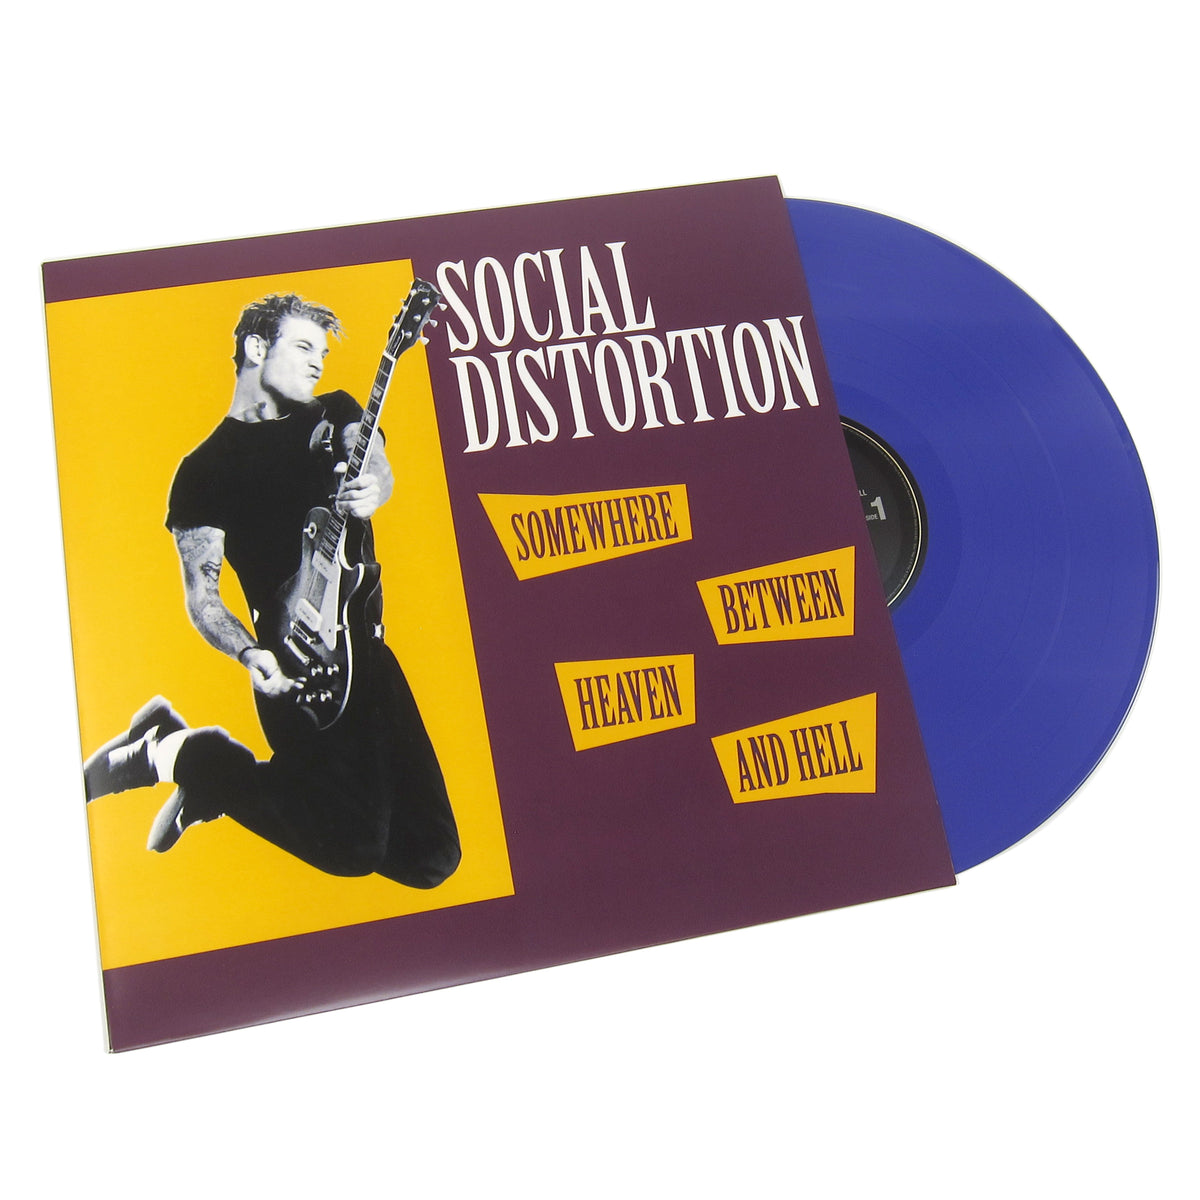 Social Distortion: Somewhere Between Heaven And Hell (Music On Vinyl 180g, Colored Vinyl) Vinyl 2LP